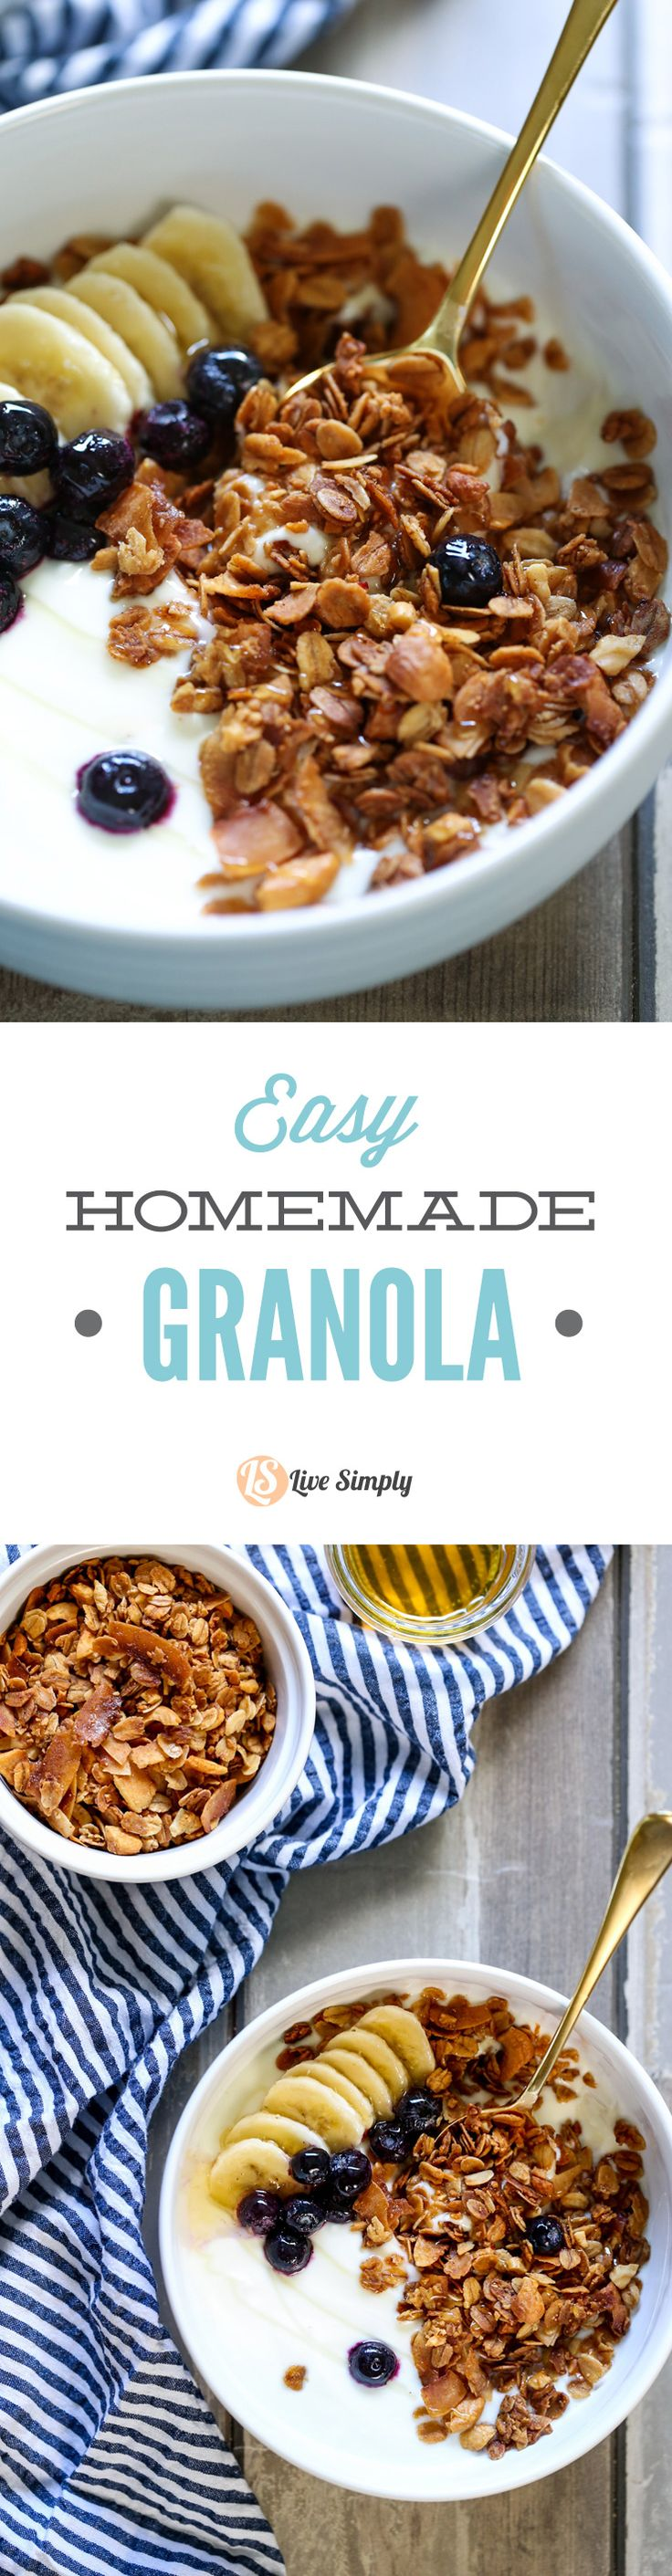 A super easy and healthy homemade granola! This recipe only takes minutes to toss together. Perfect for breakfast or a quick snack. Basic pantry ingredients only.